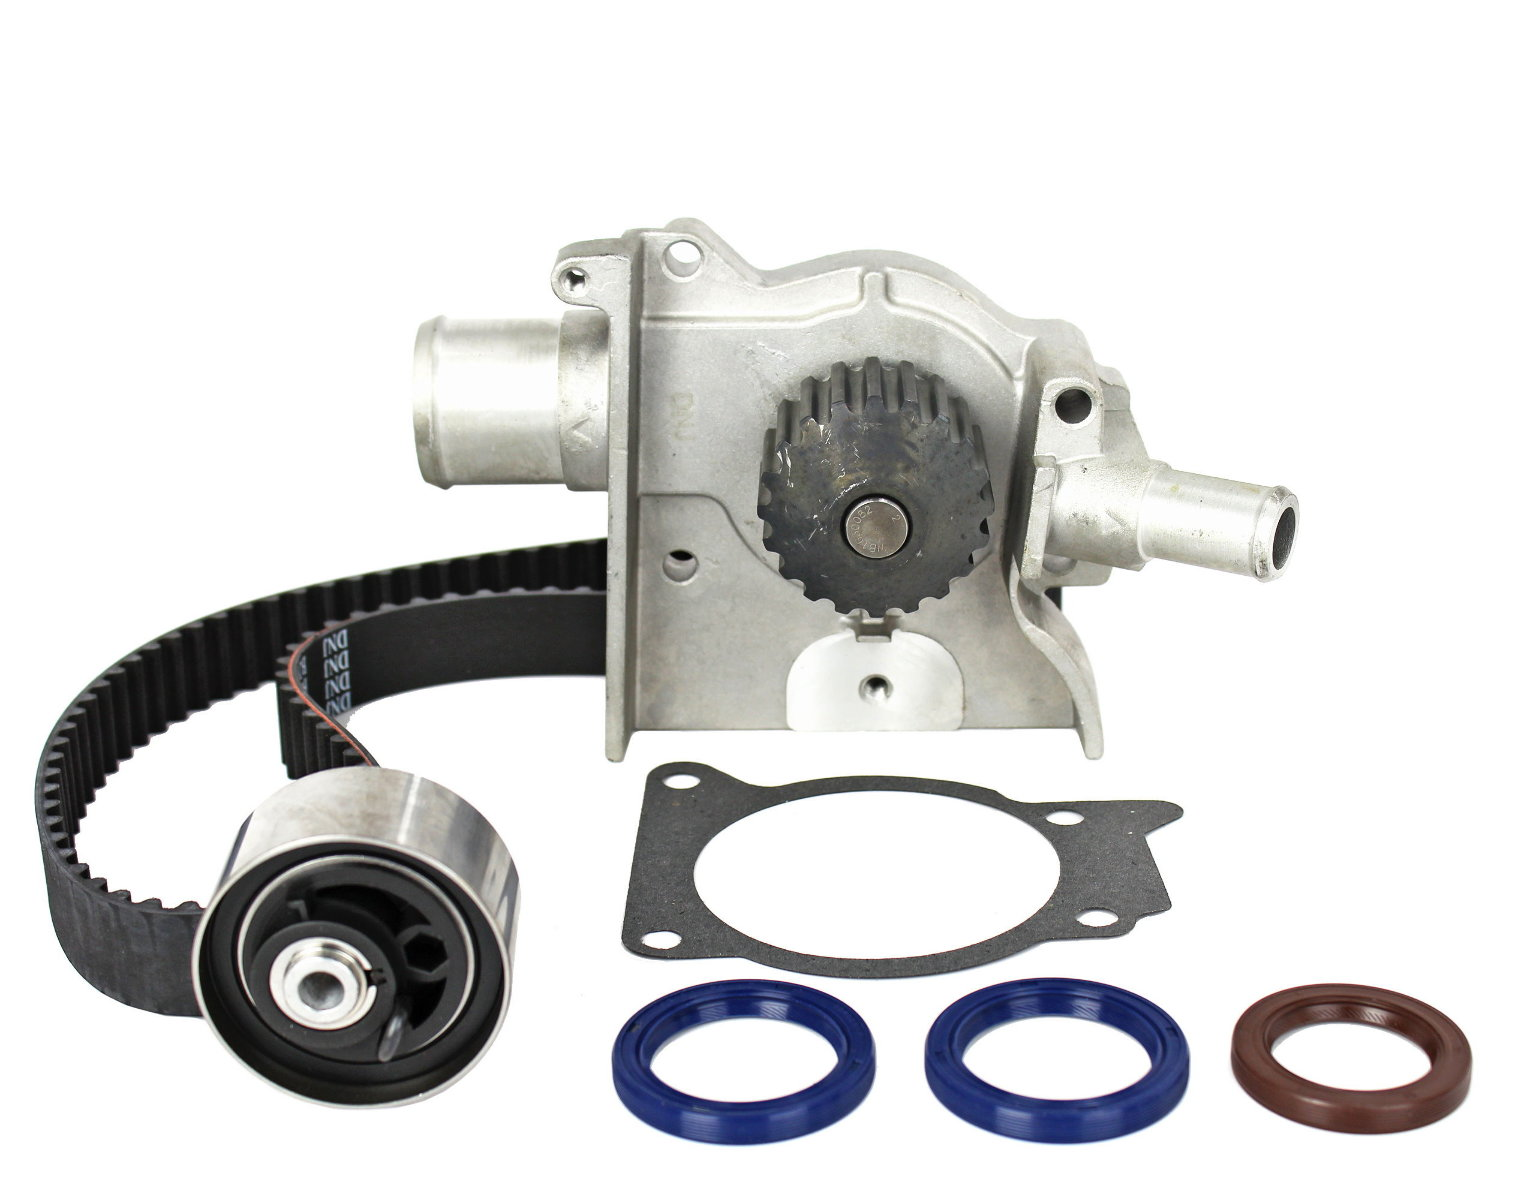 1997 To 1999 Mercury Tracer Timing Belt Kit With Water Pump - 2.0 Liter SOHC